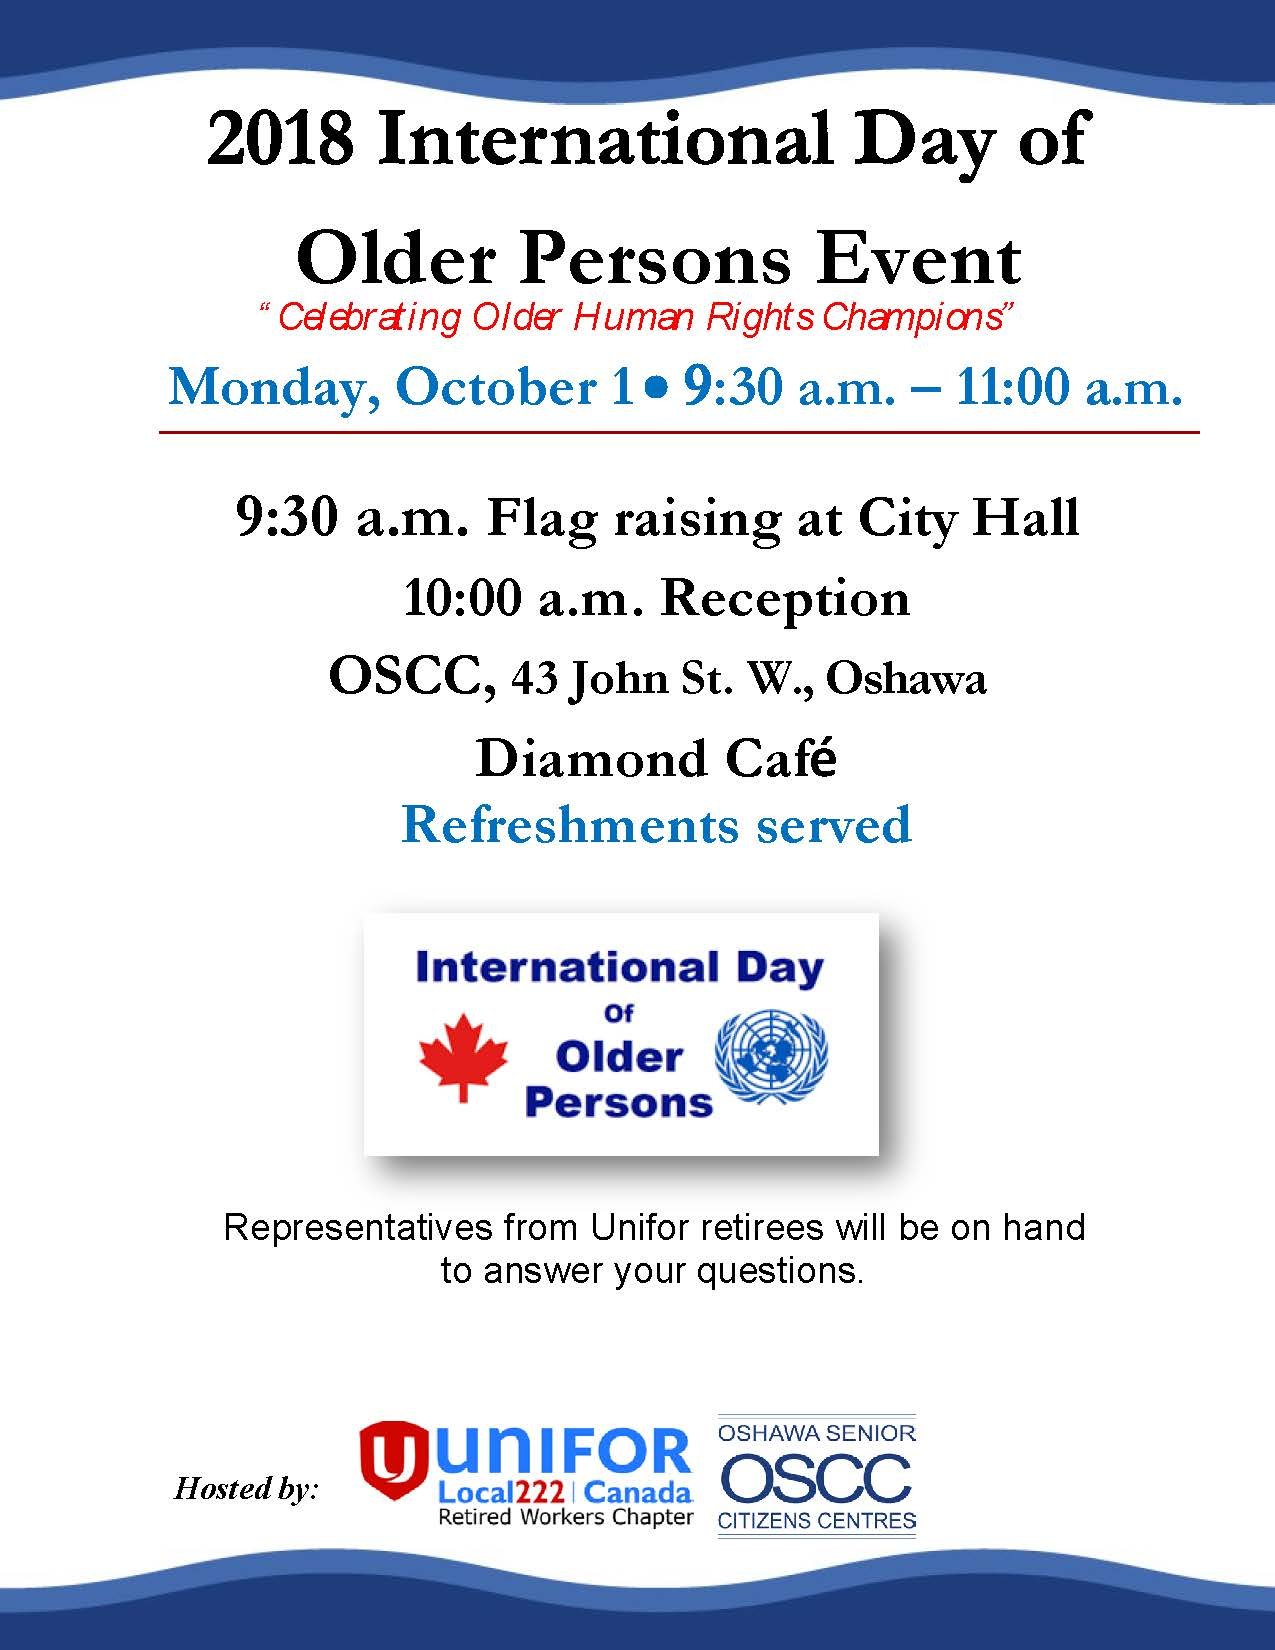 Int'l Day Older Persons event